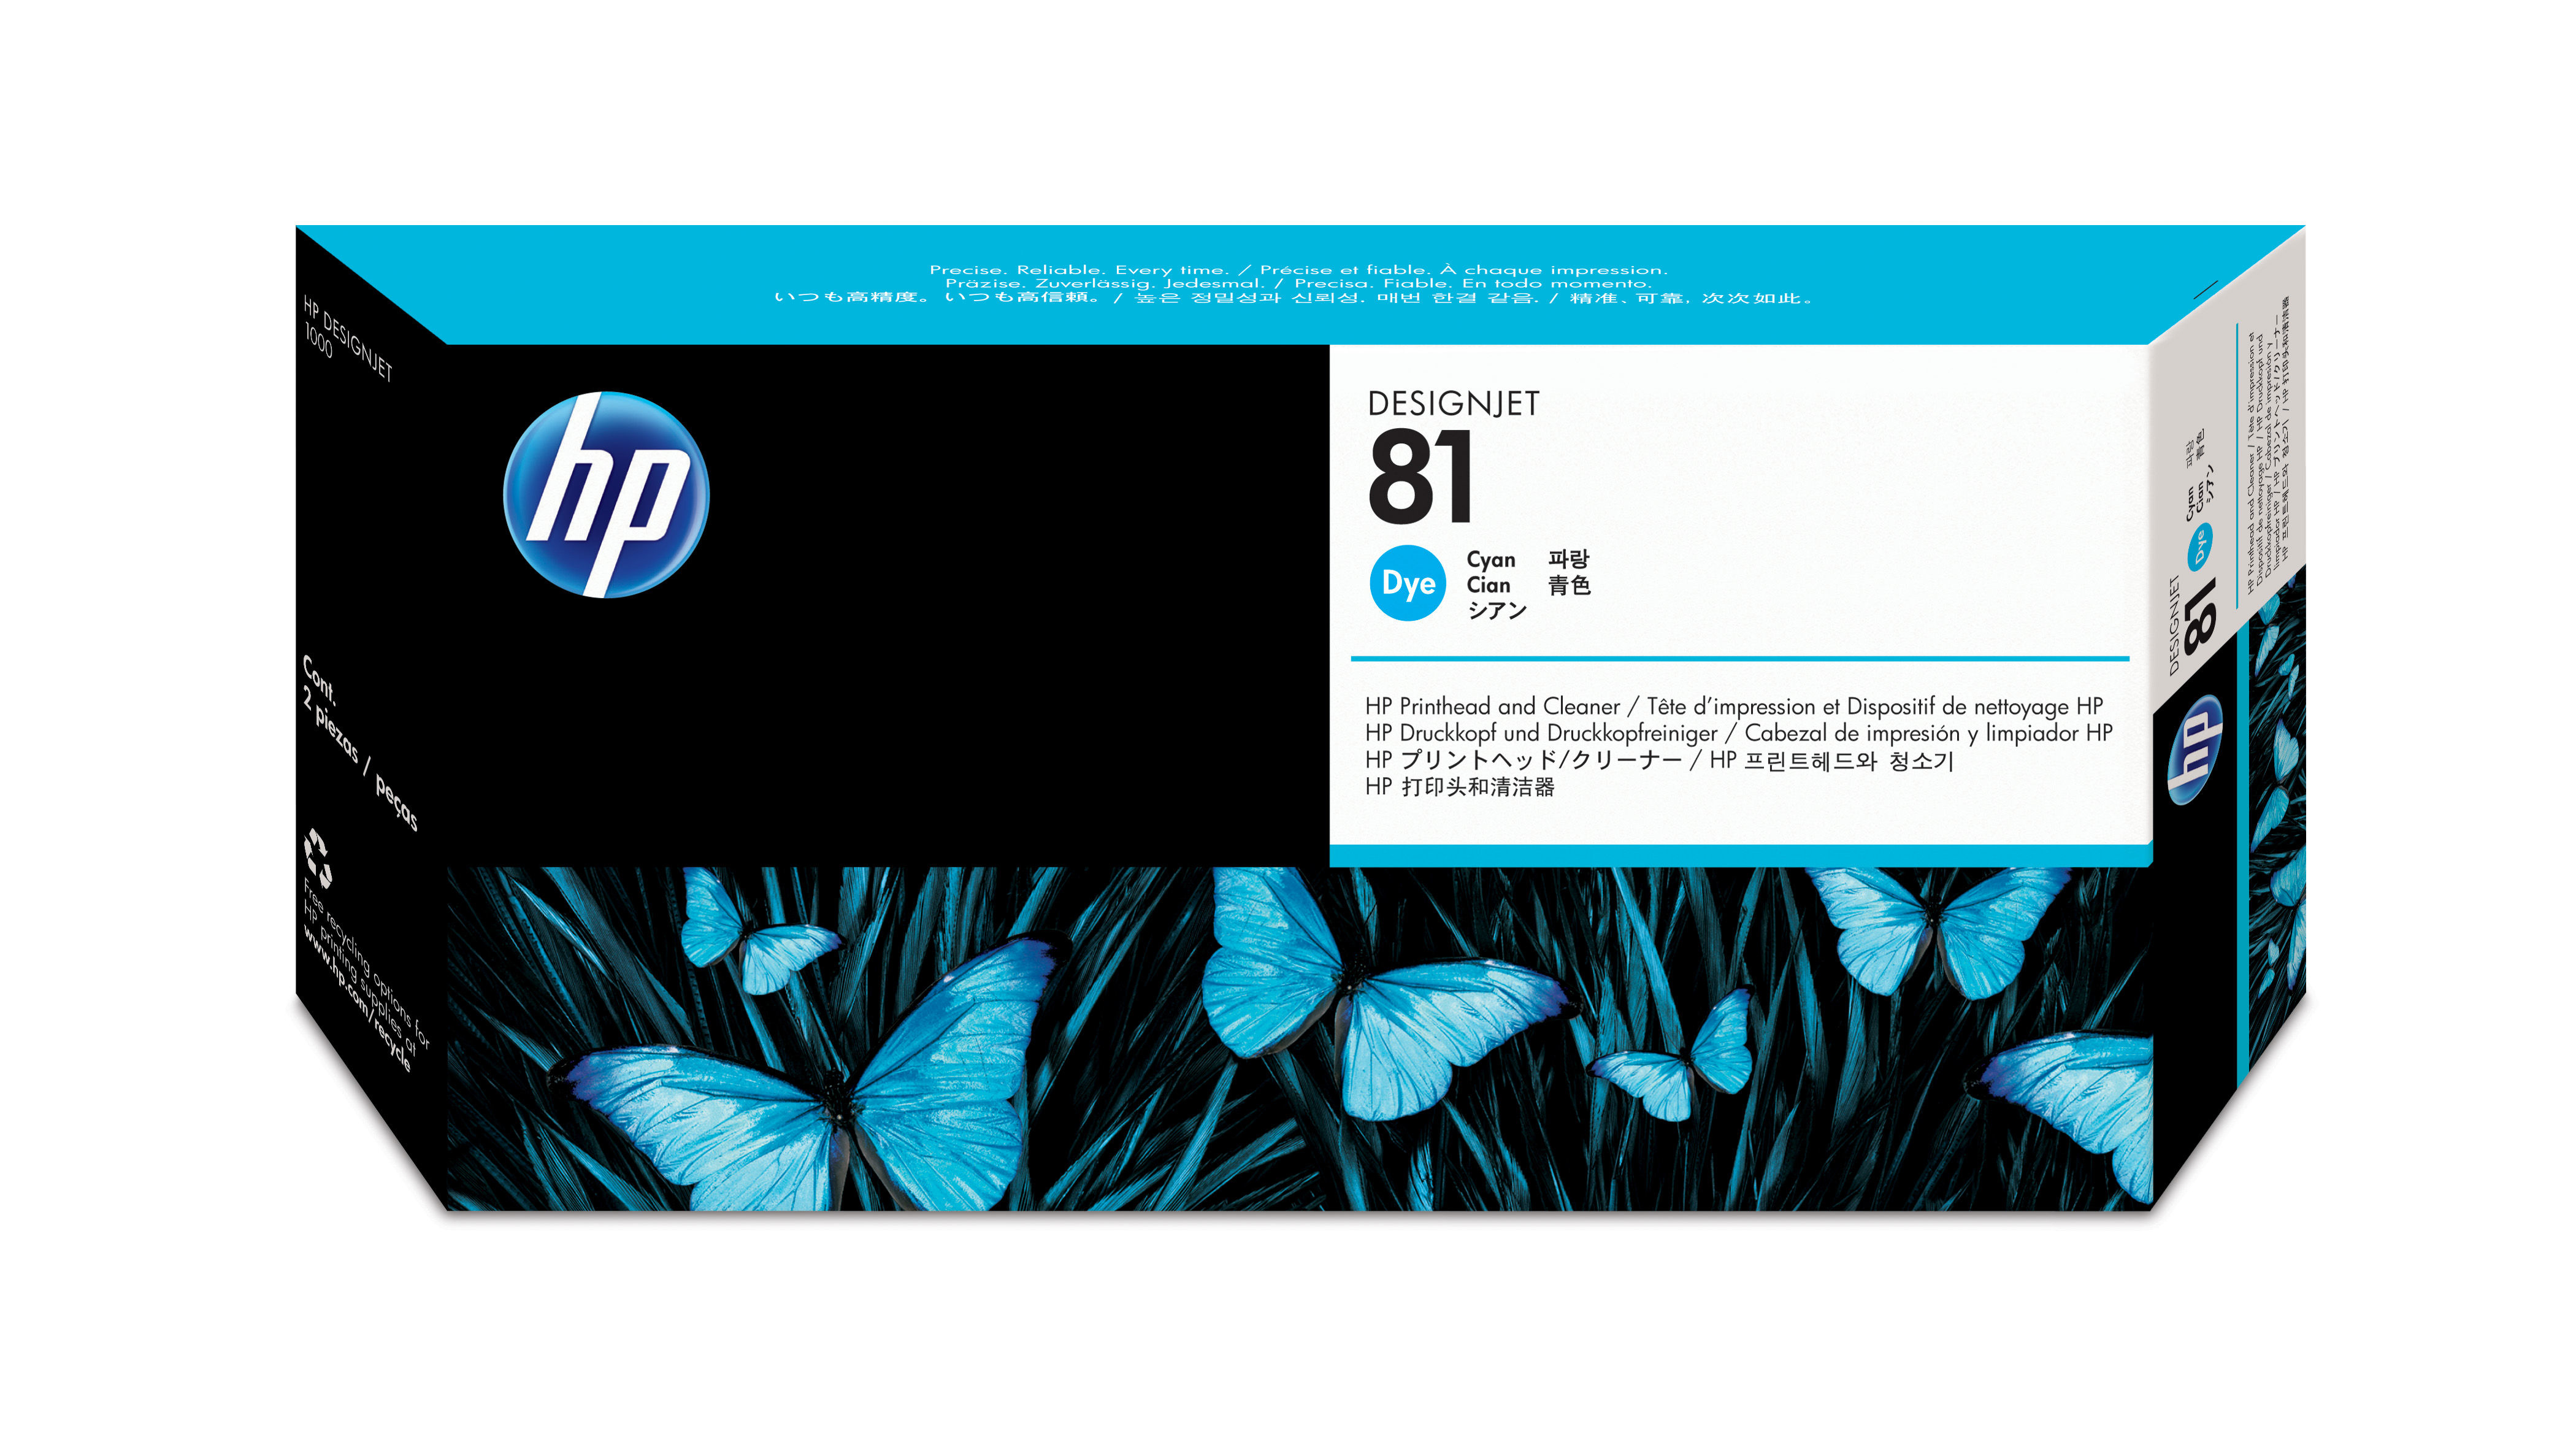 Hp No.81 Dye Cyan Printhead + Cleanr C4951a - WC01